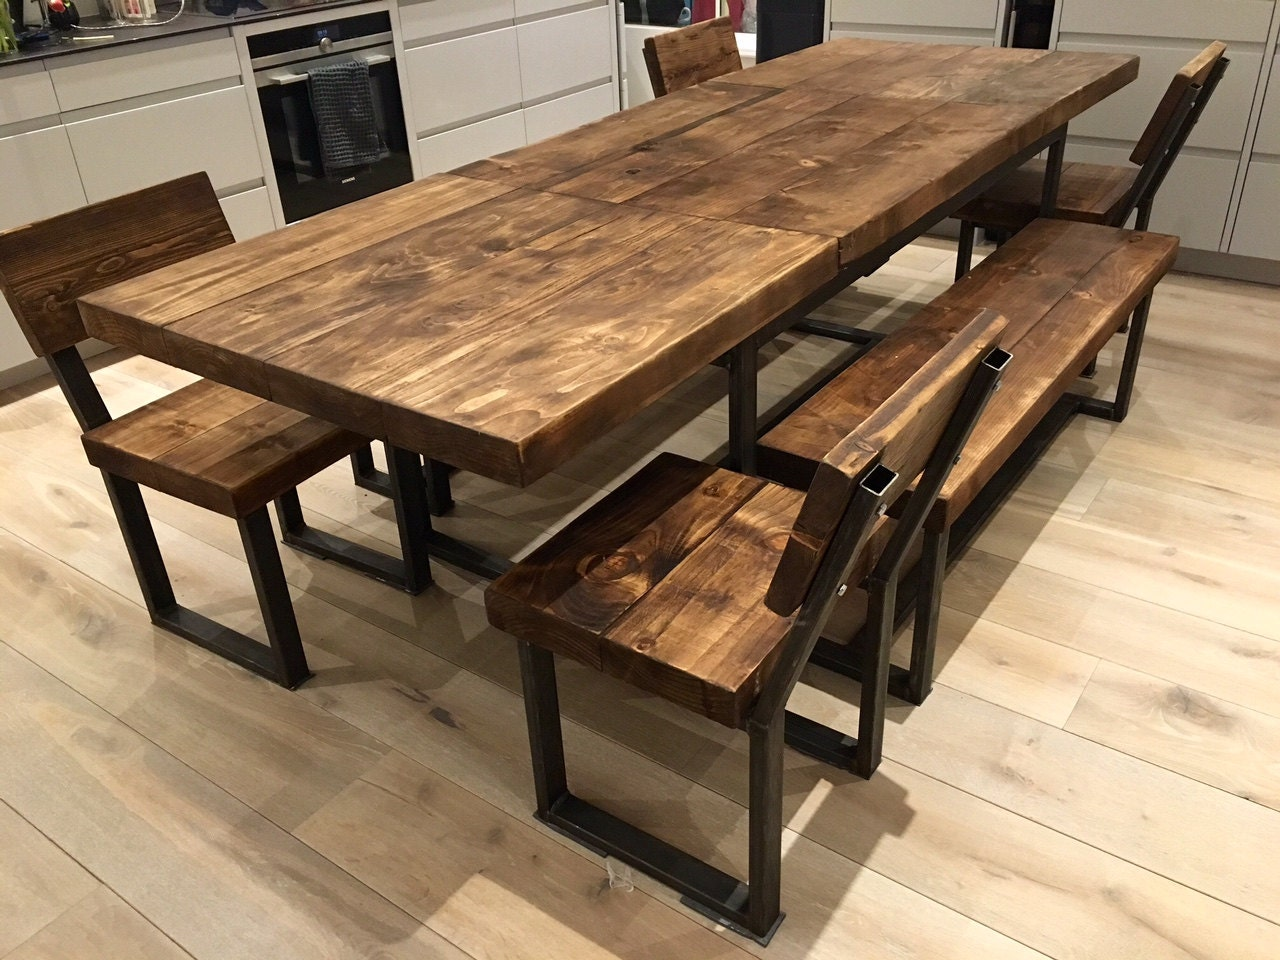 Reclaimed Industrial Chic 6-10 Seater Extending Dining Table